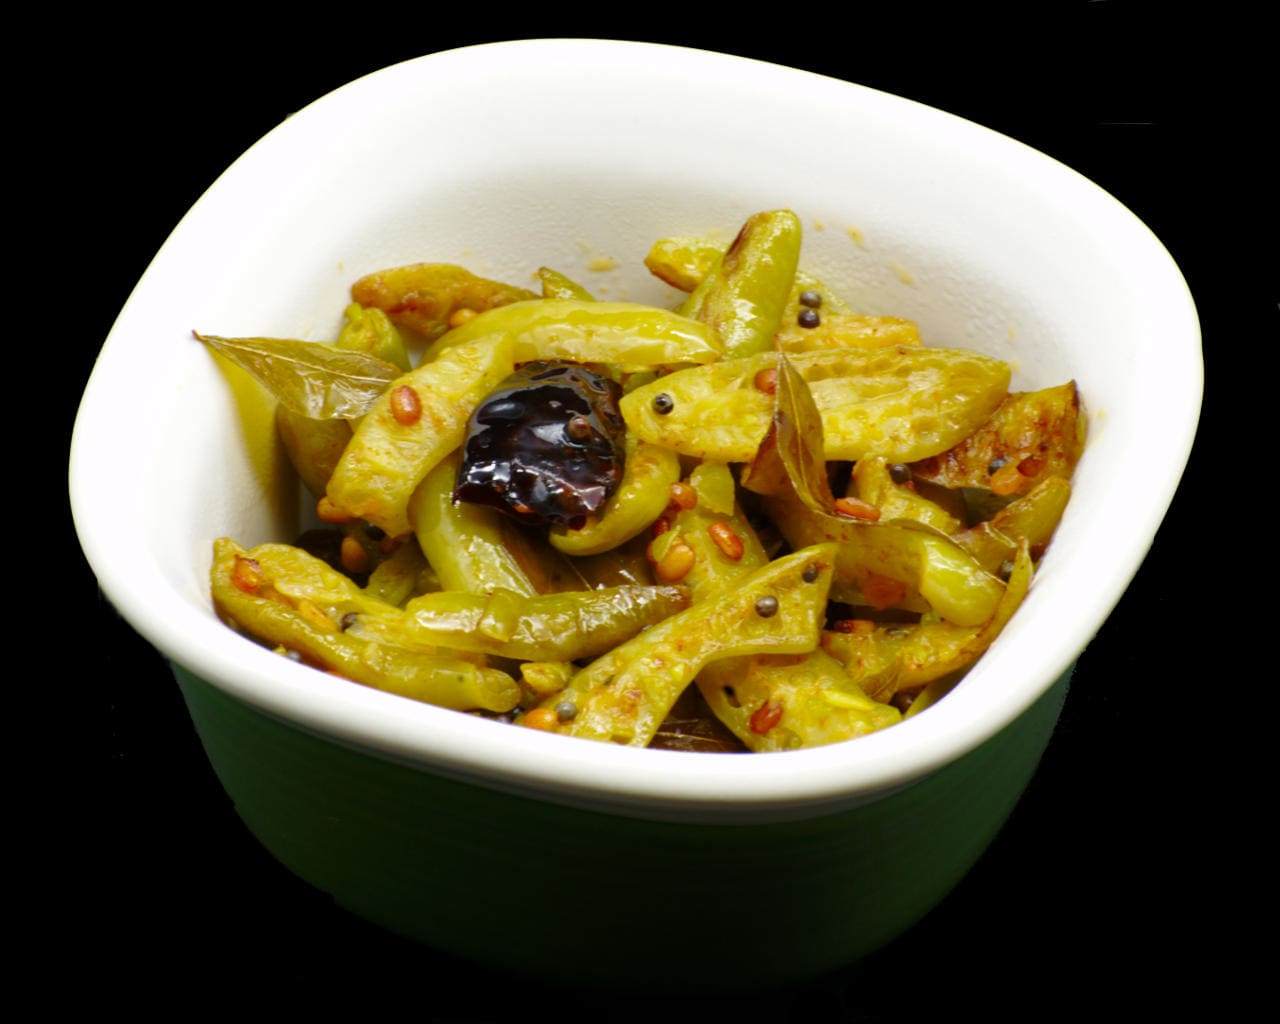 Stir-Fried Tindora With South Indian Spices Image